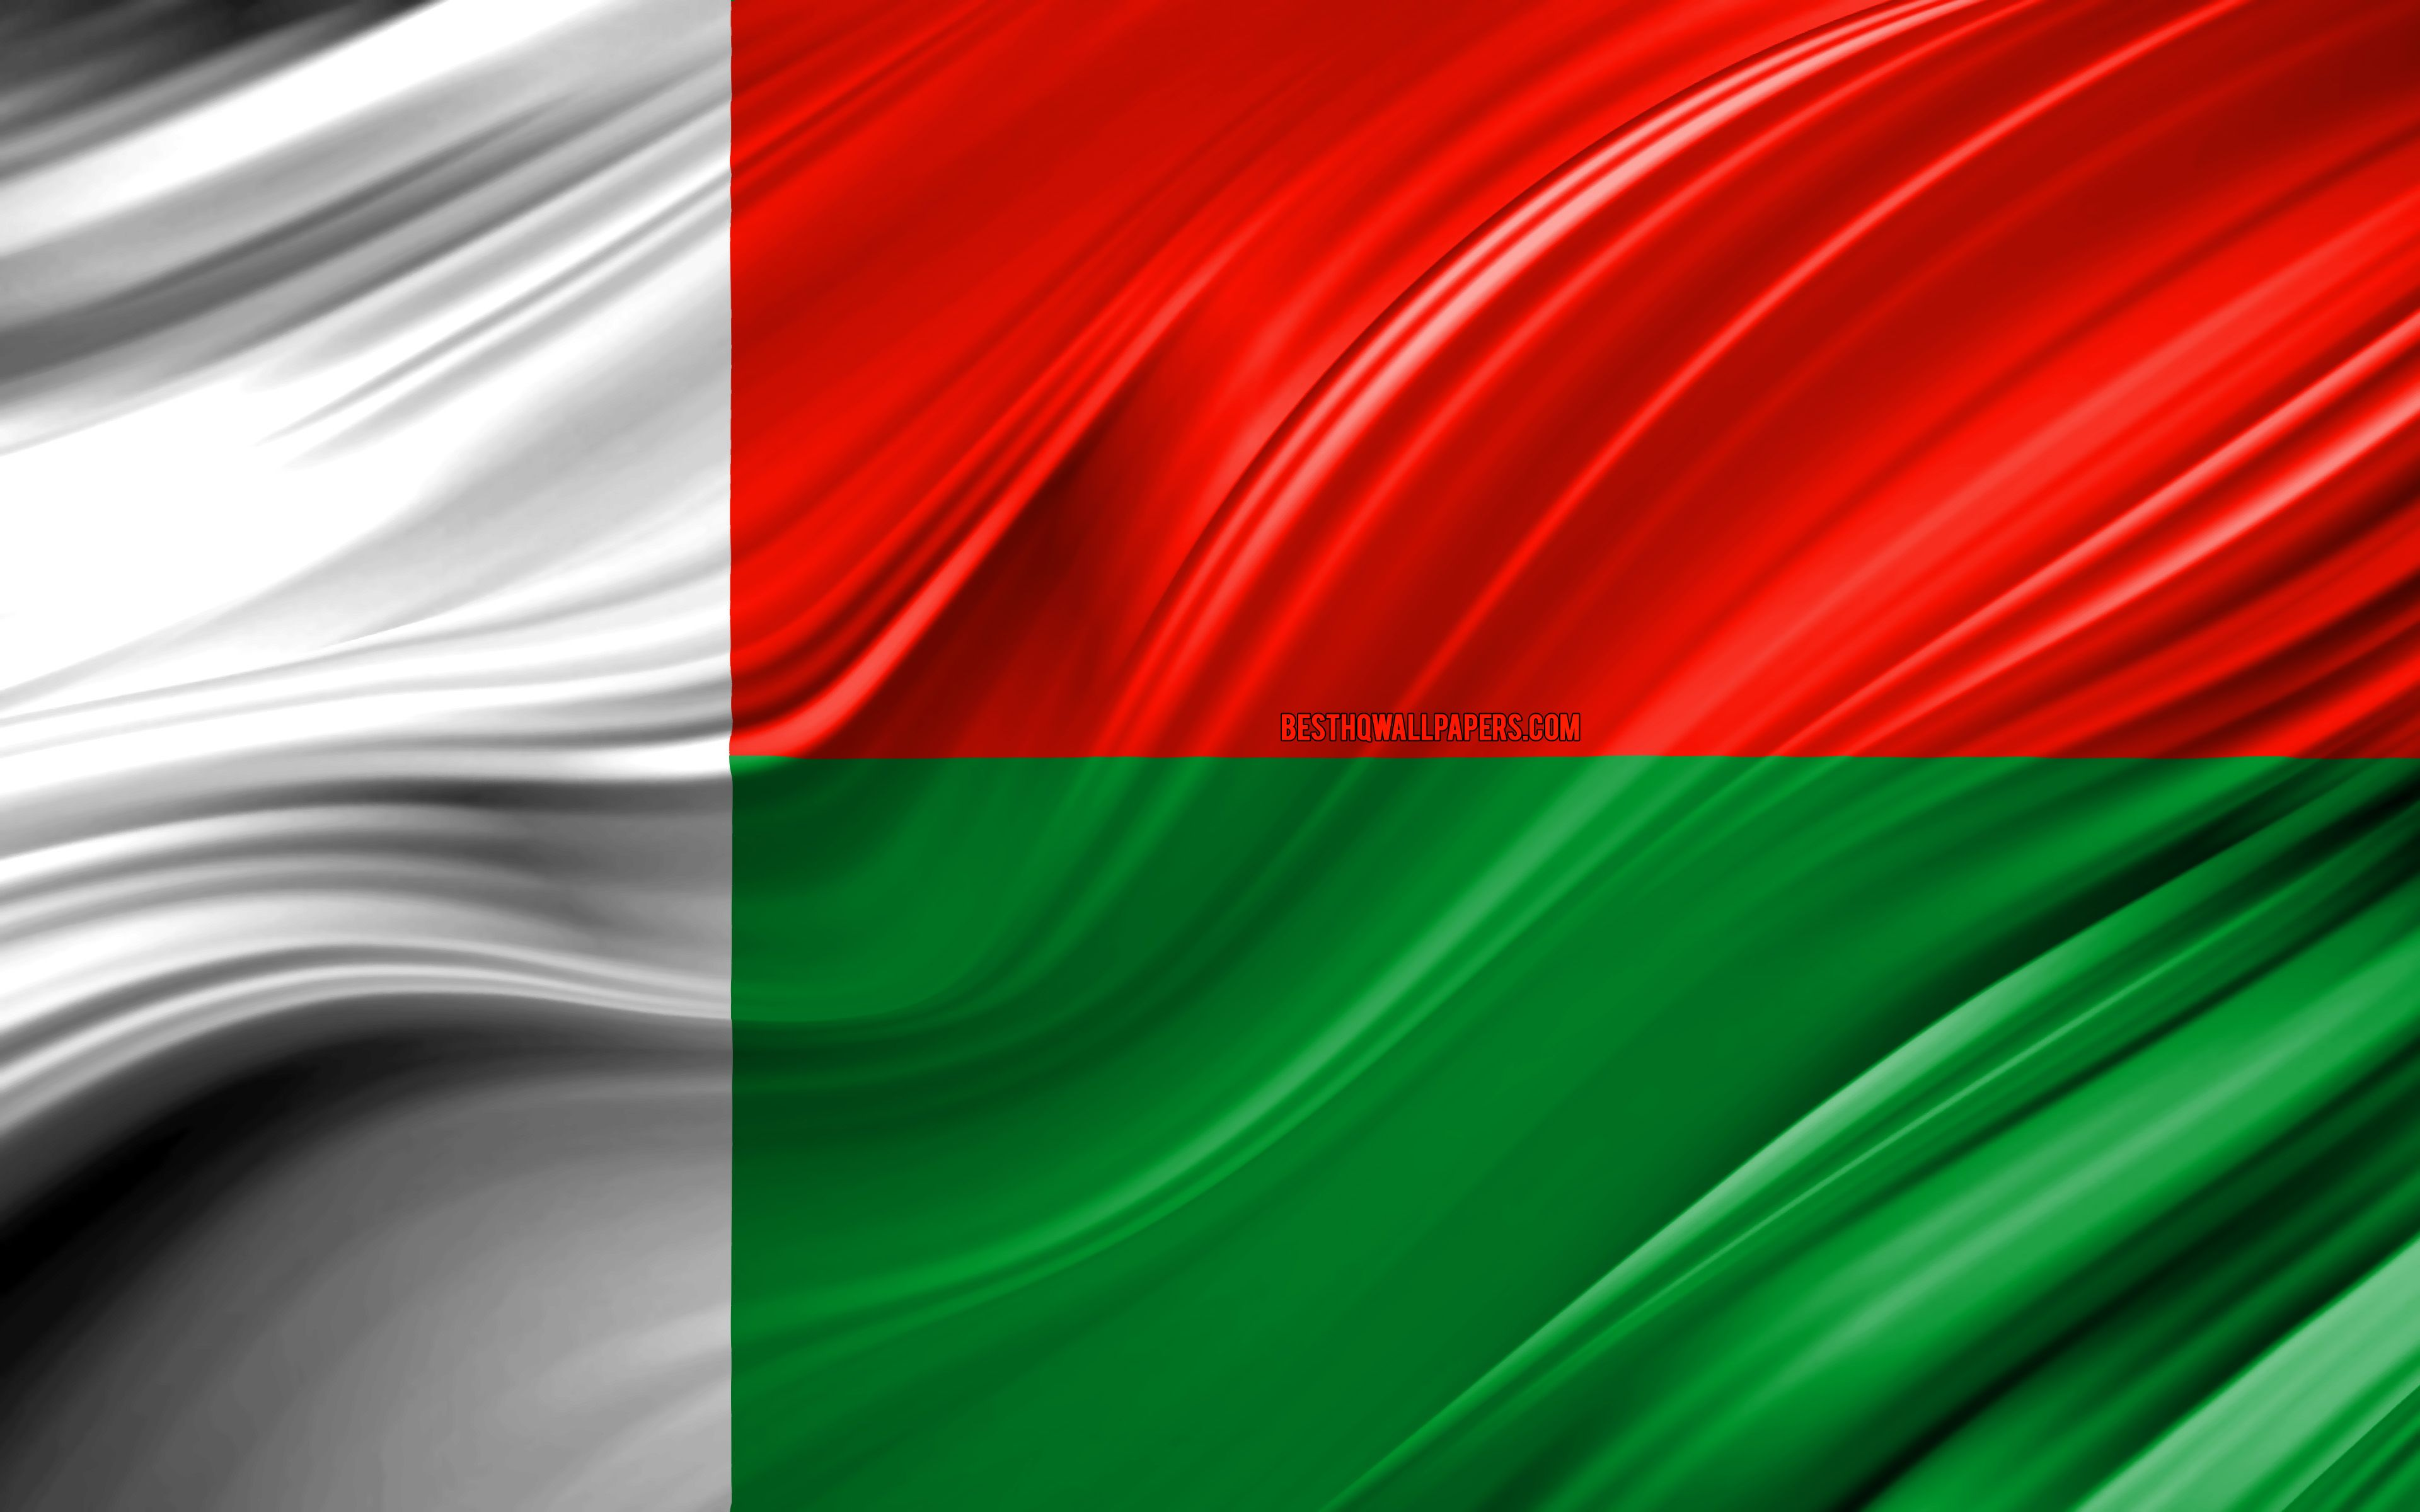 3840x2400 Download wallpapers 4k, Madagascar flag, African countries ...